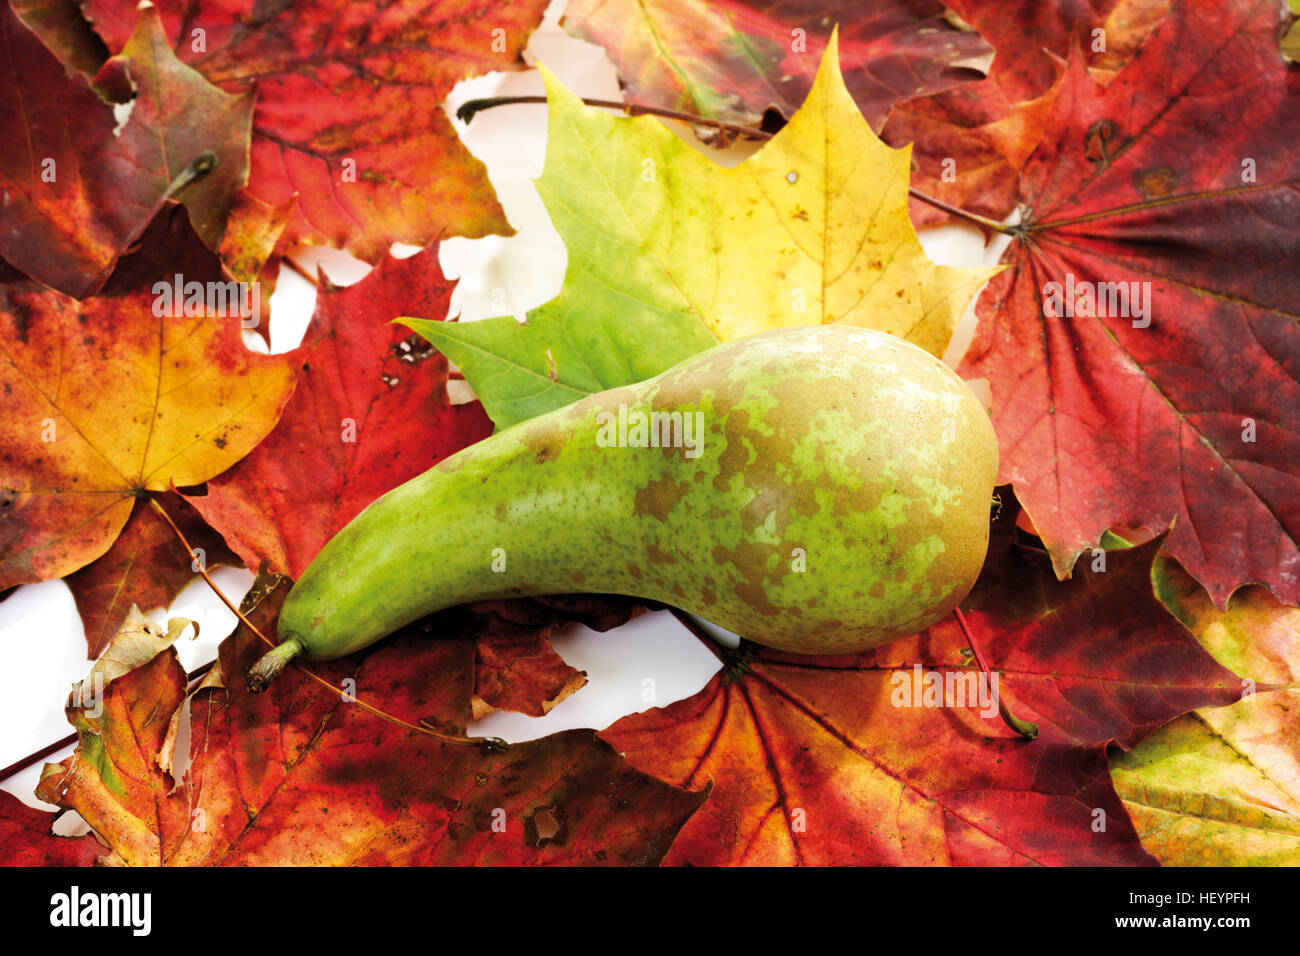 Pear with colourful autumn leaves Stock Photo